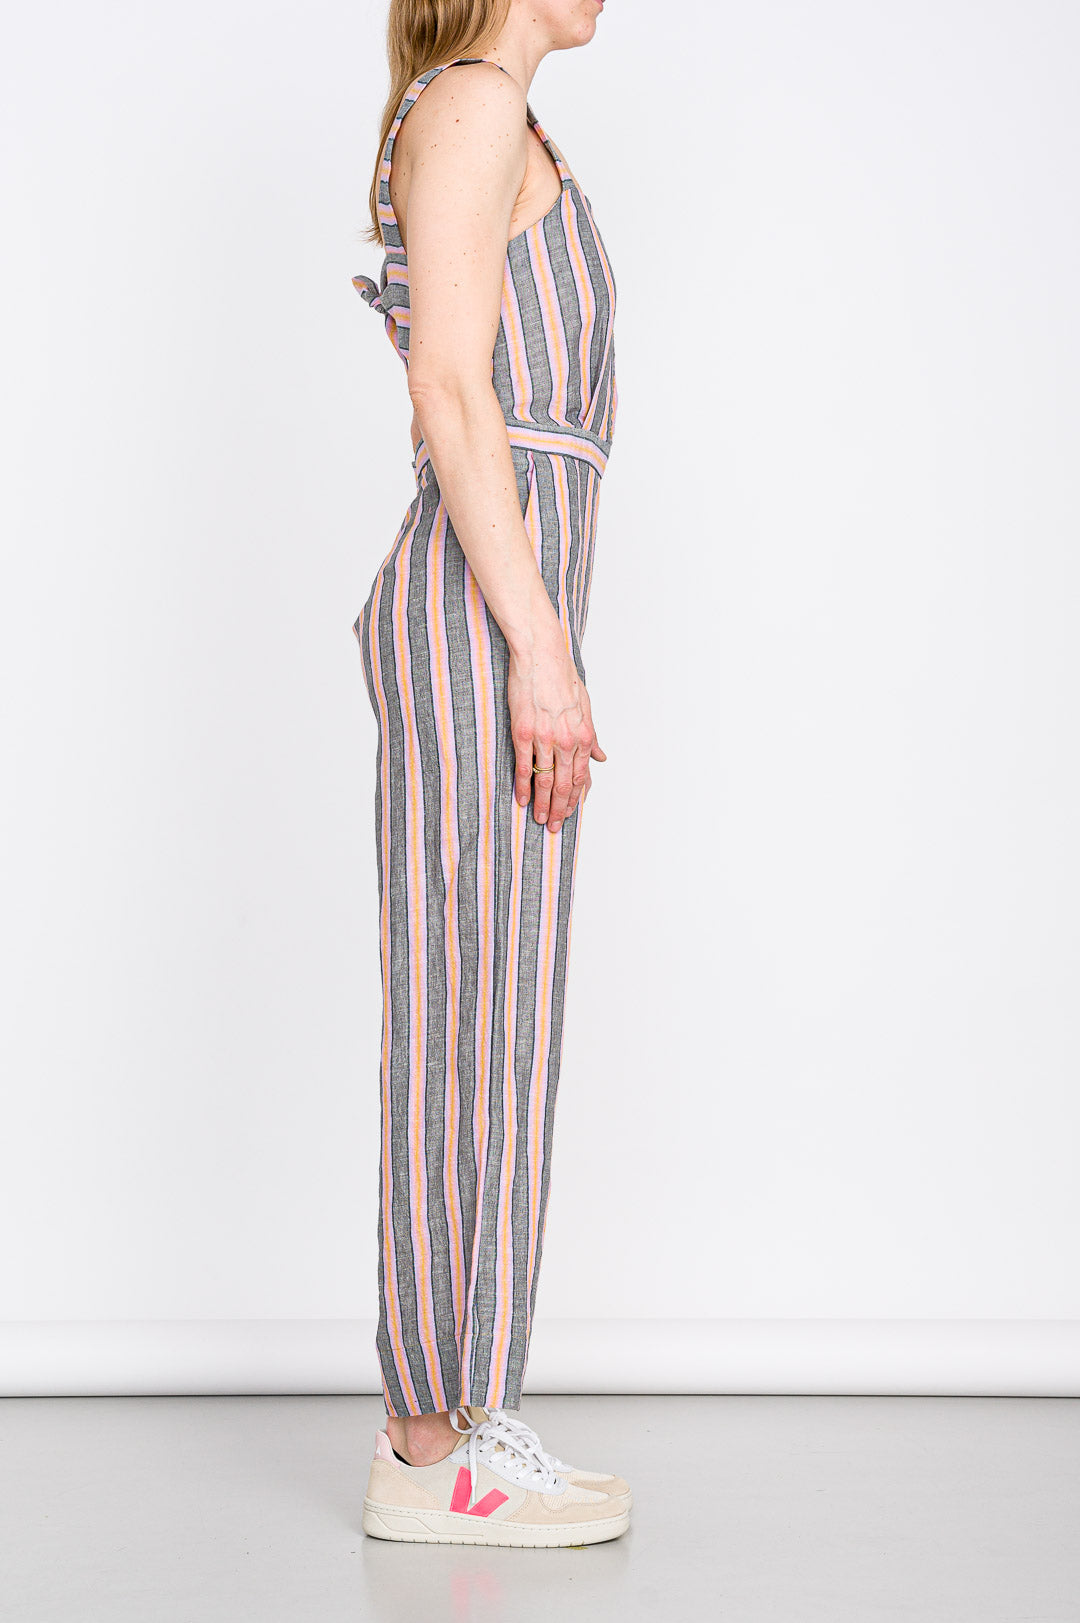 SESSUN // Jumpsuit Bellevue Sunsetgrey